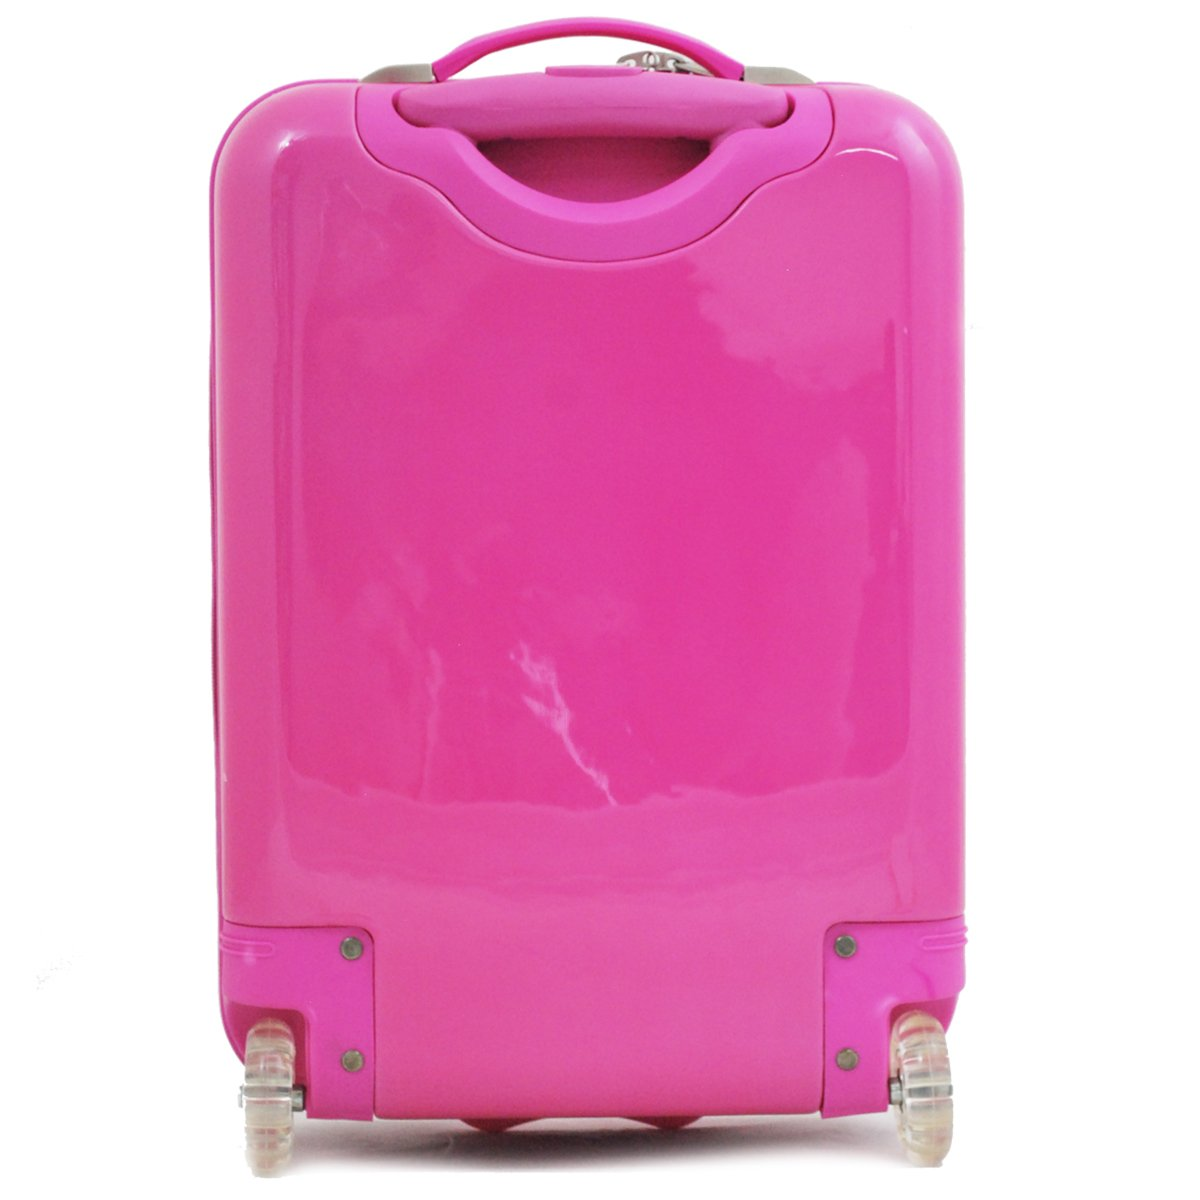 Valise cabine 2 roues MADISSON Lapin - Rose